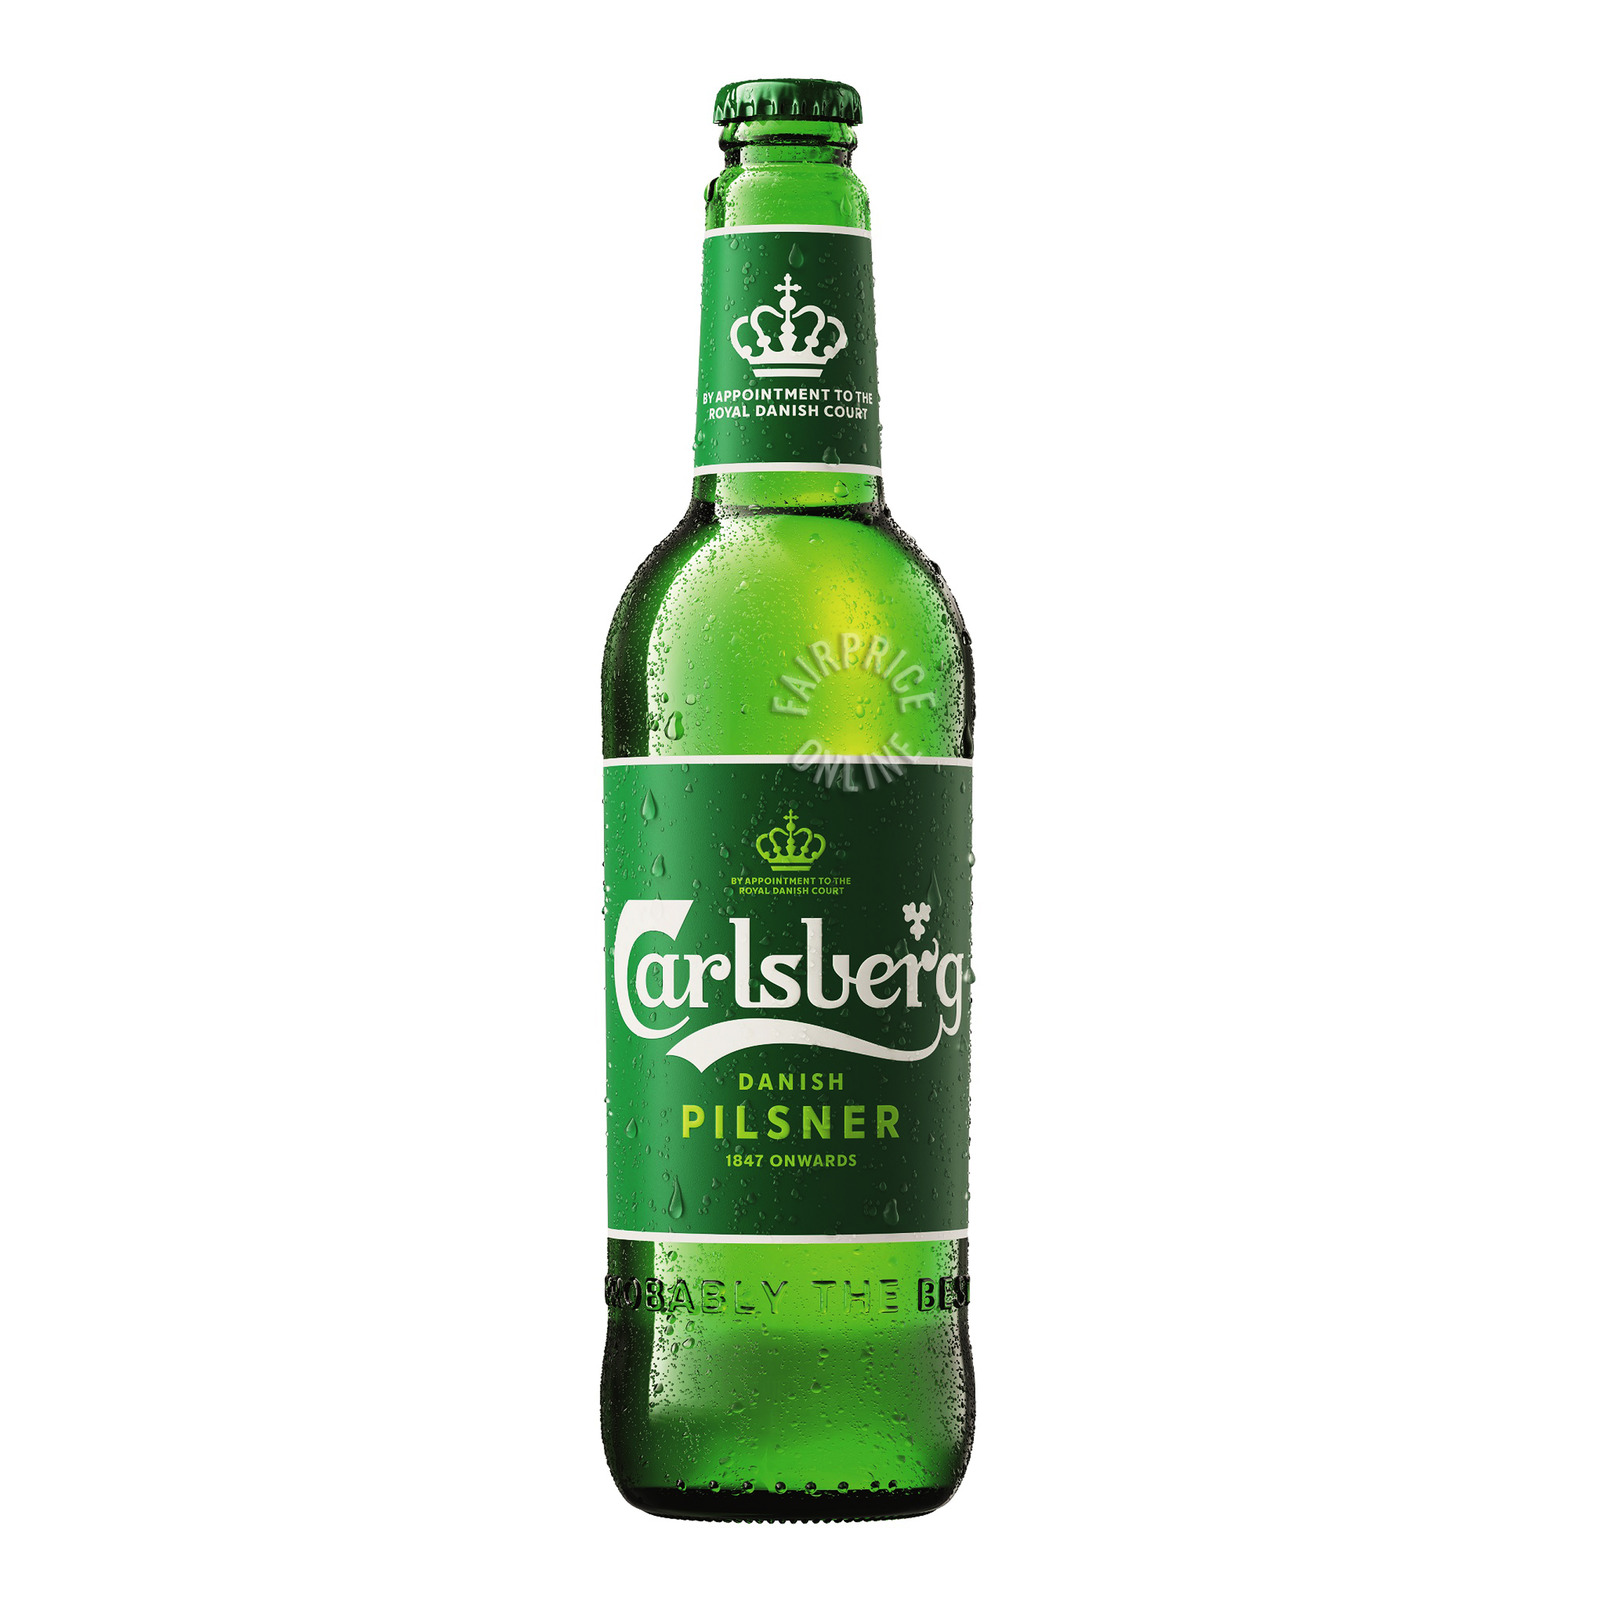 CARLSBERG Green Label Beer Pint Bottle 640ml